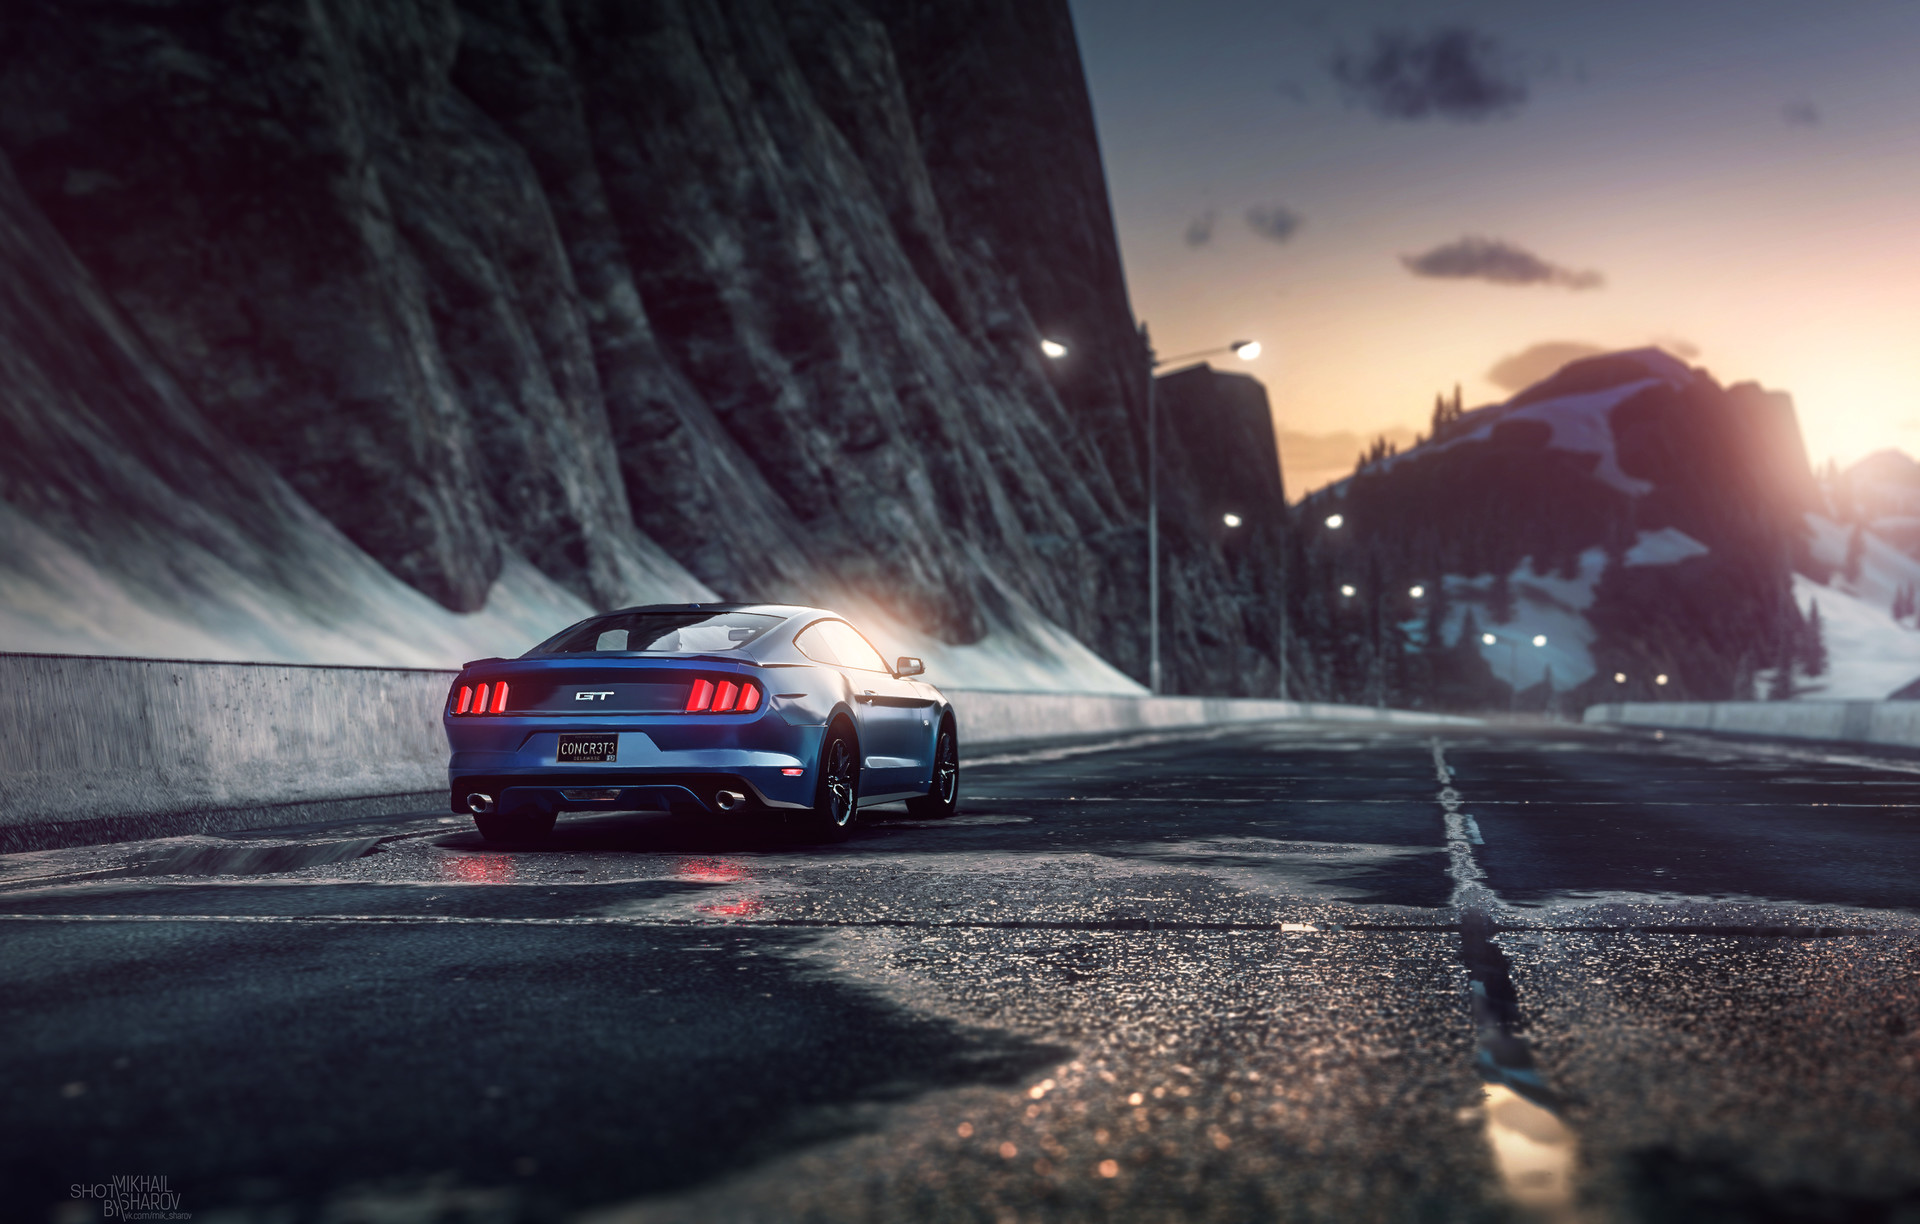 The Crew Game Photography by Mikhail Sharov